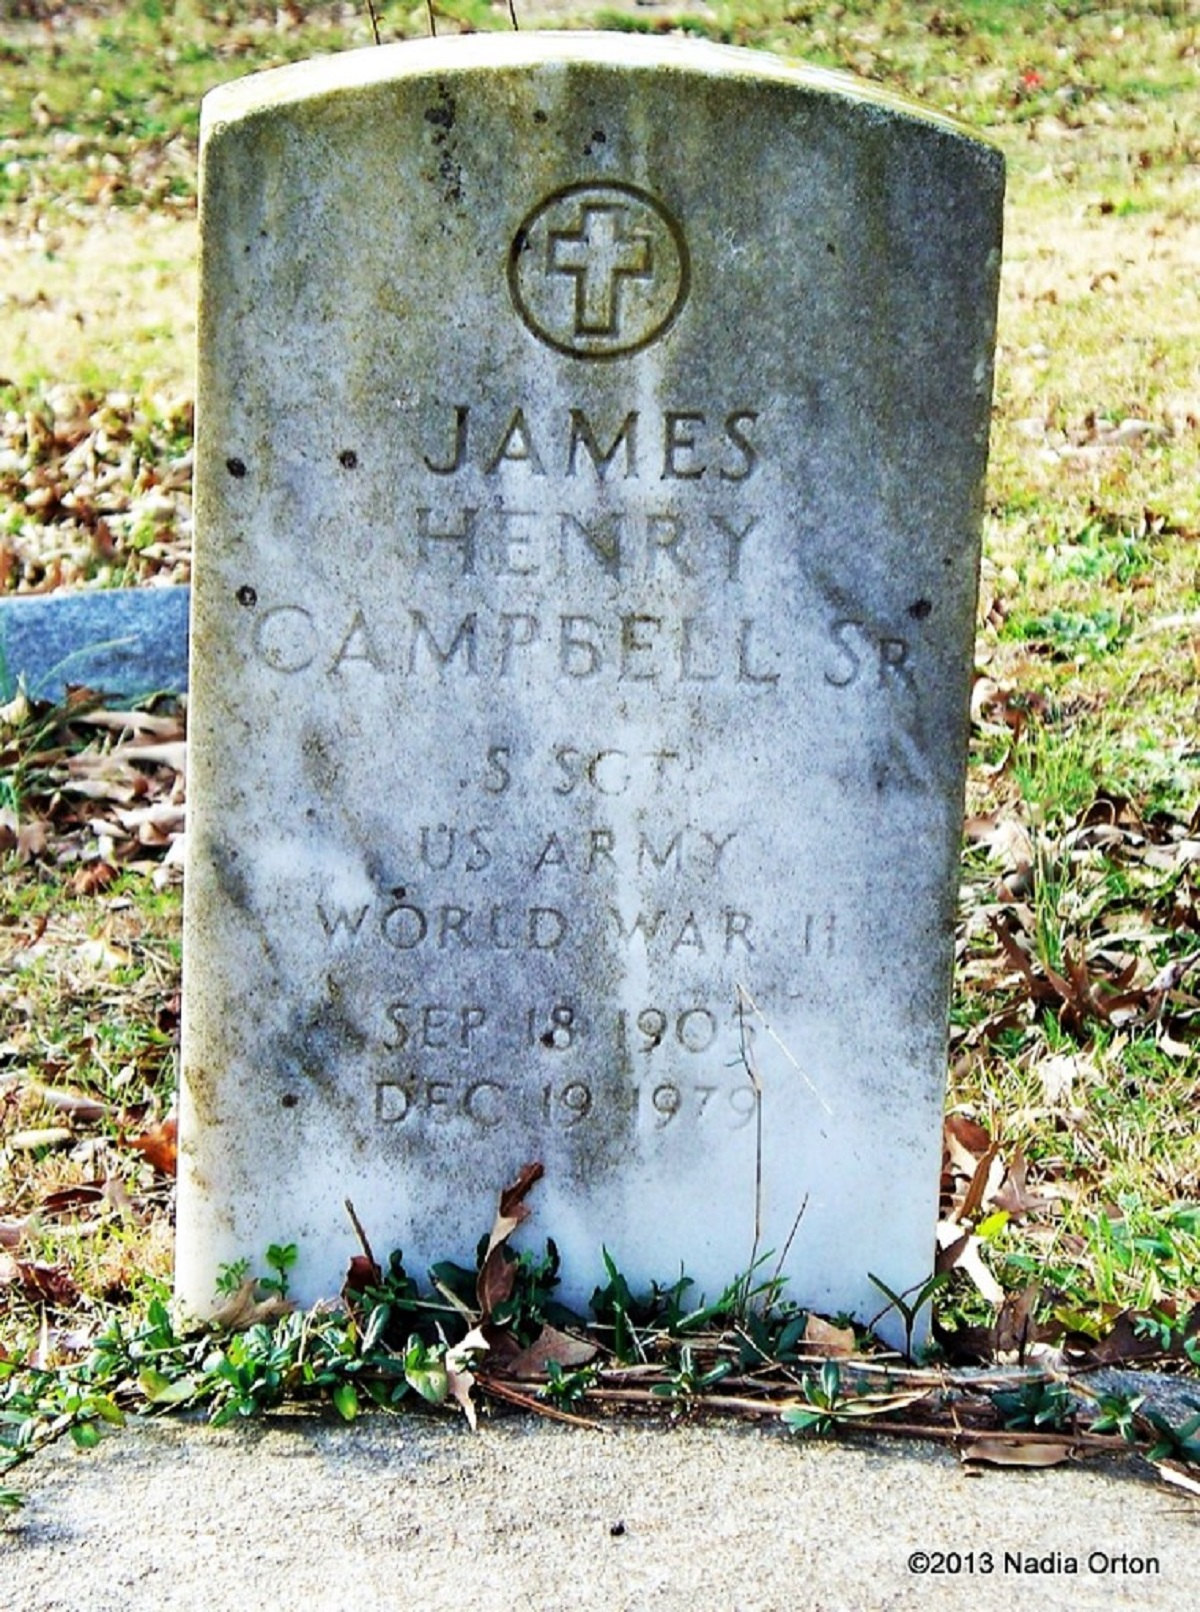 Protected: Suffolk, Virginia: On James Henry Campbell, U. S. Army, WWII, and finding his Civil War ancestor